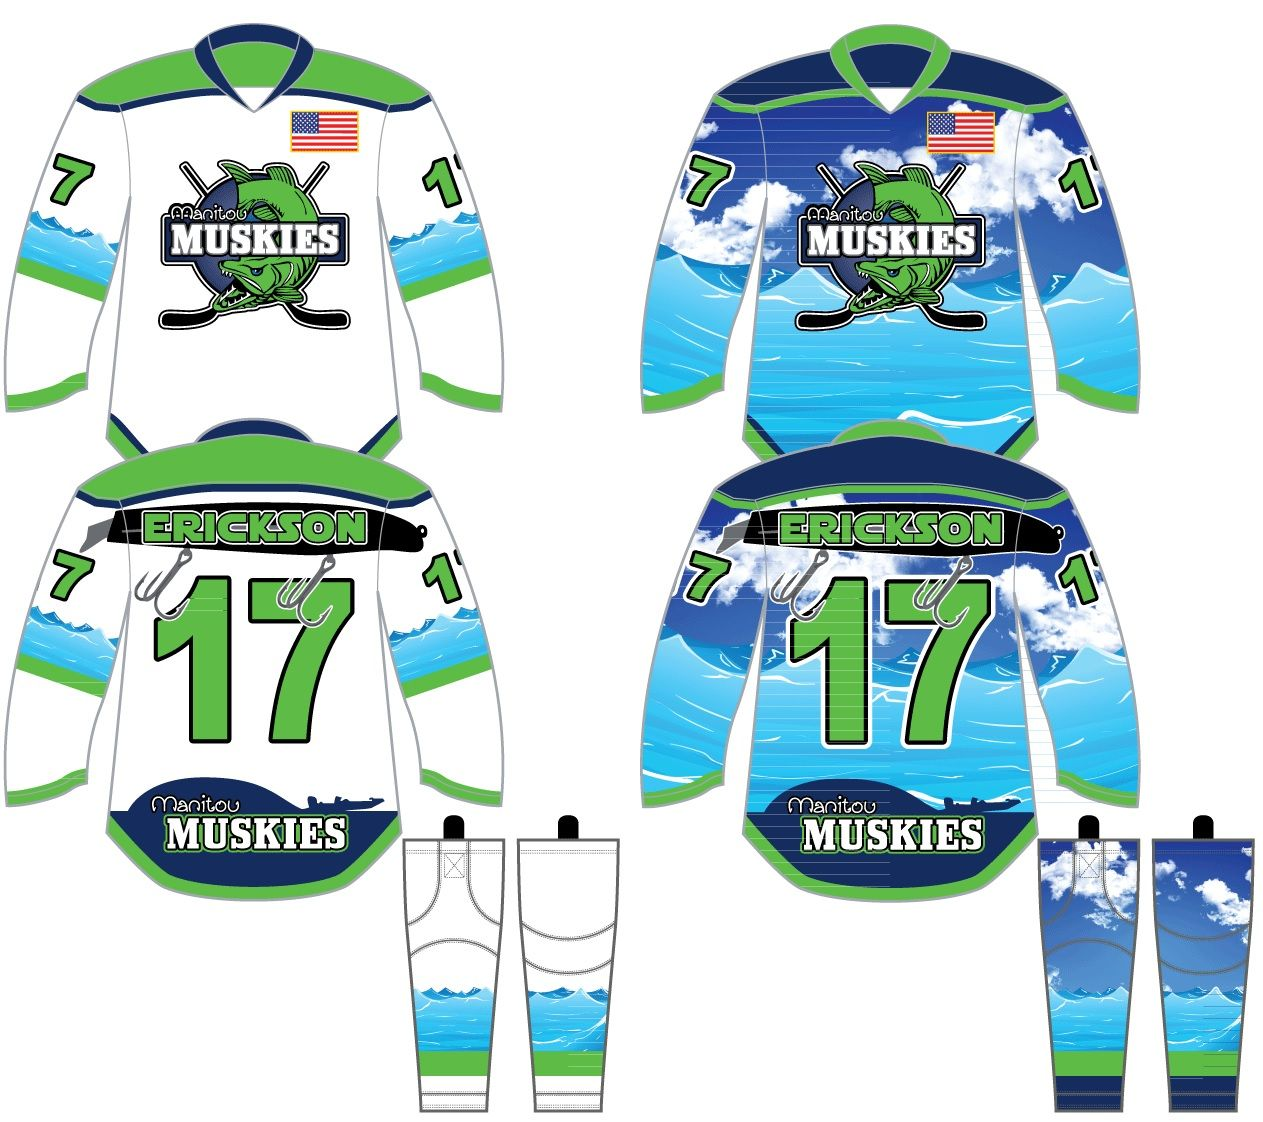 Some Of The Coolest Designs We Have Here The Manitou Muskies Got It Right Manitou Customjersey Customdes Custom Jerseys Jersey Design Custom Hockey Jerseys